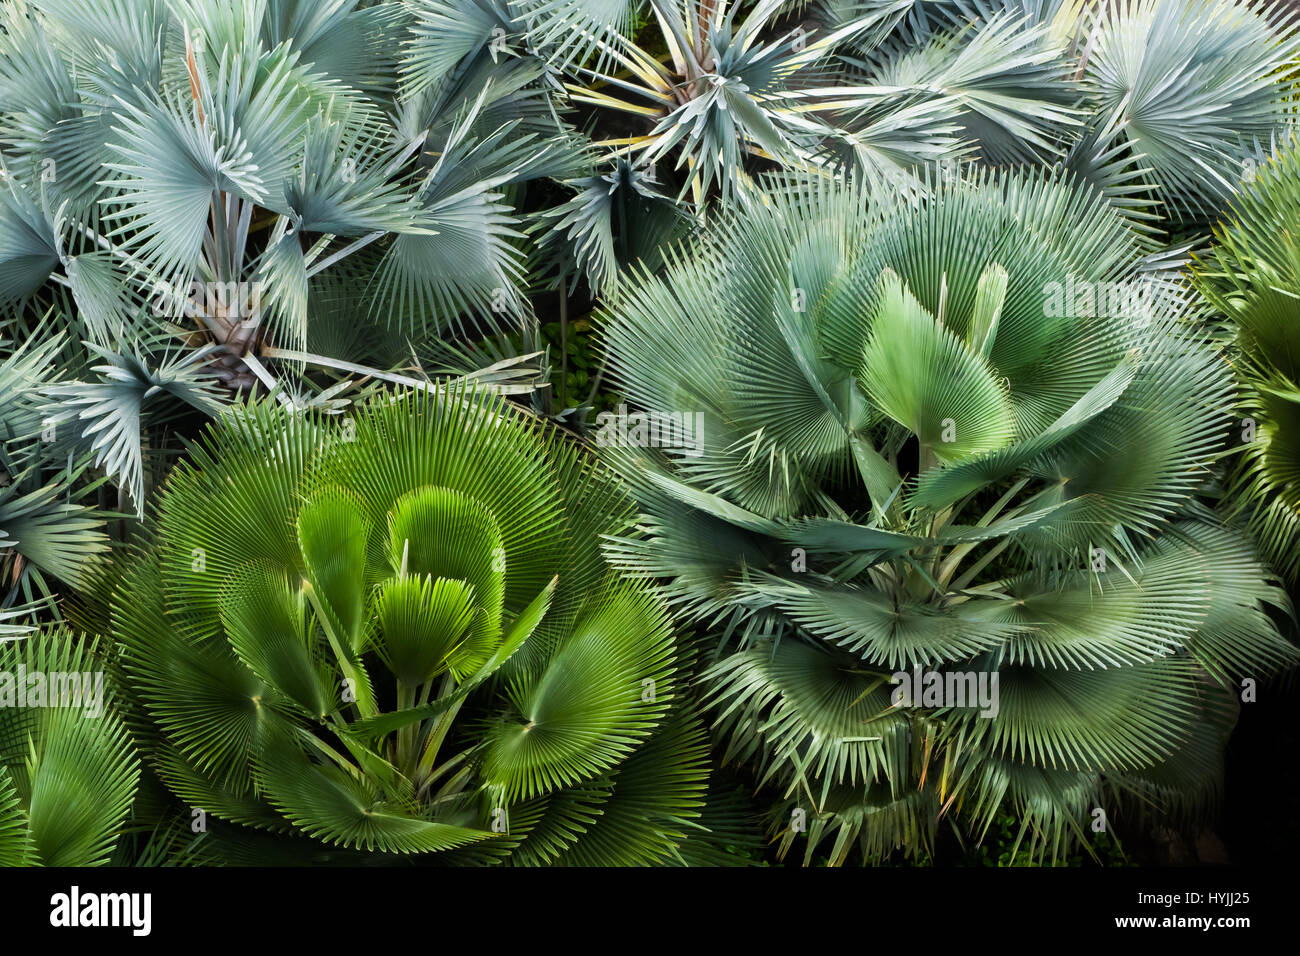 Birds eye view of lush, thriving and green fan palm bush flowerbed - Stock Image